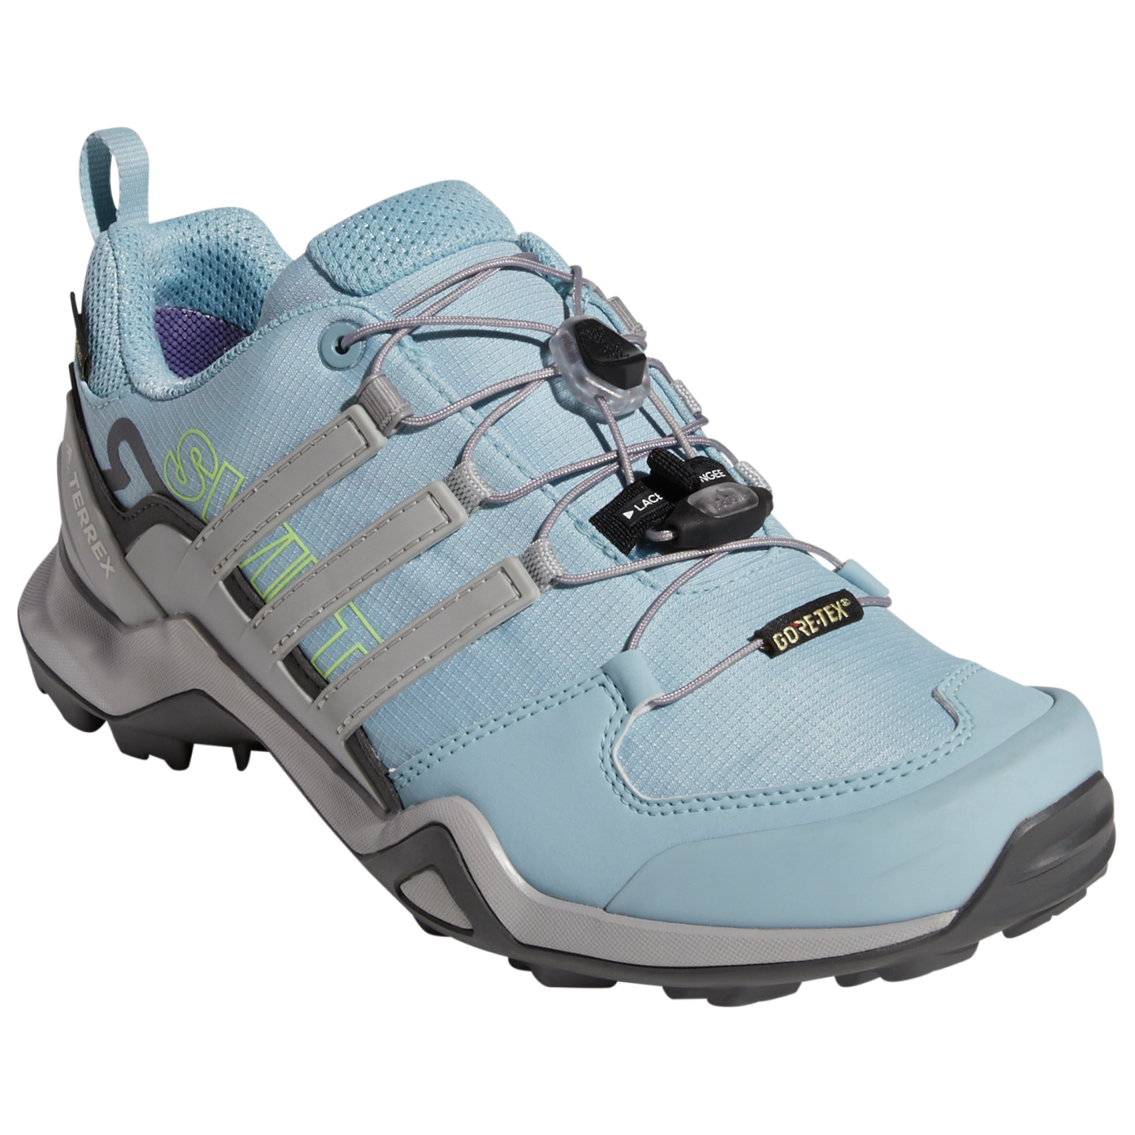 ca040740e adidas - Women s Terrex Swift R2 GTX - Multisport shoes